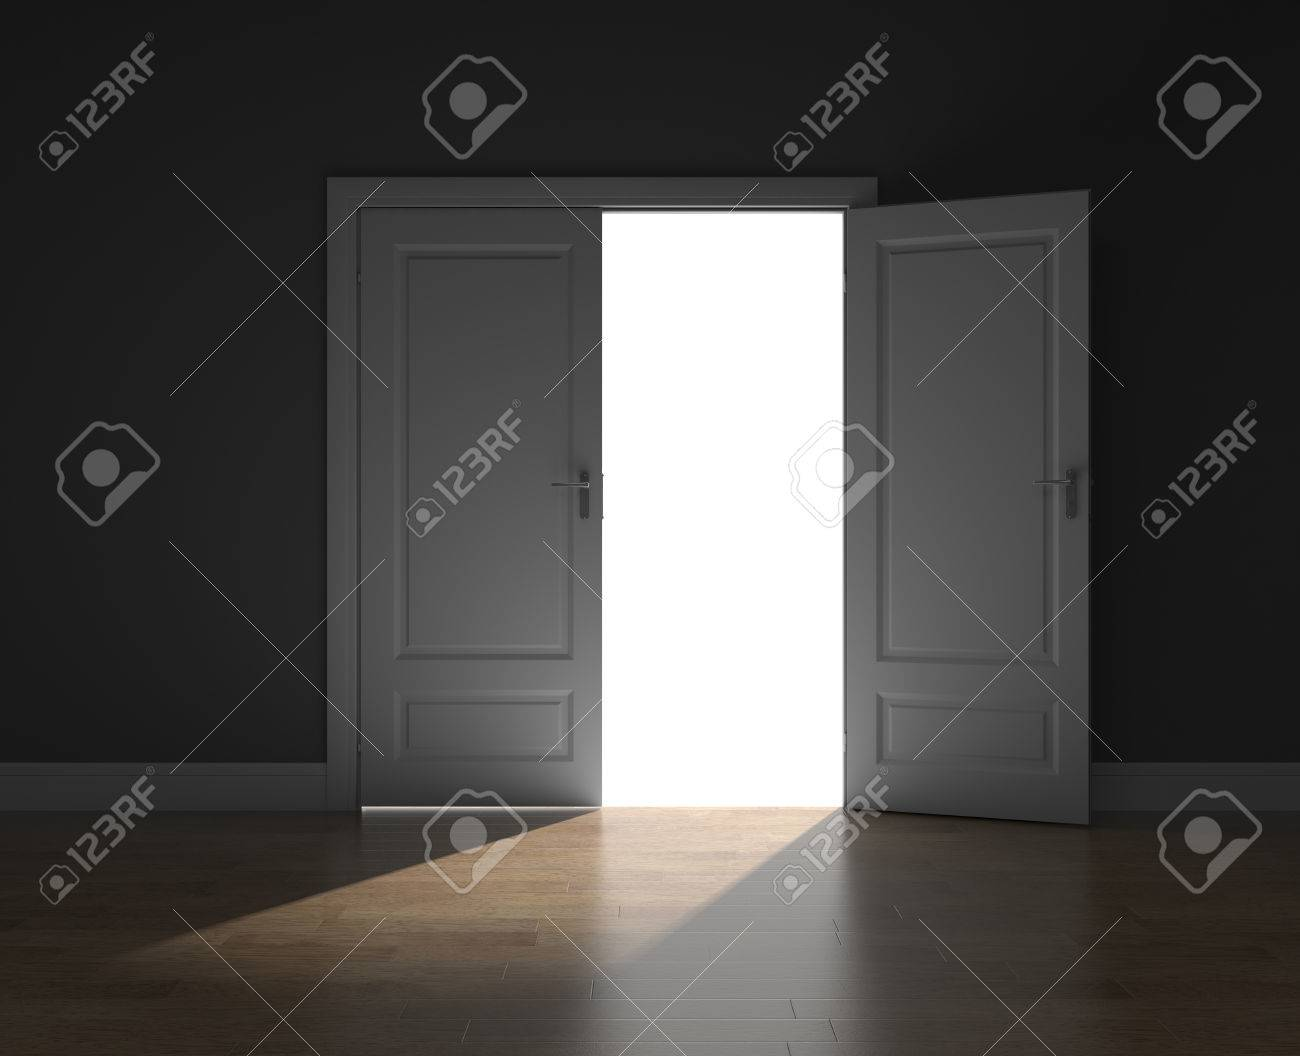 Stock Photo - The door ajar and ray of light on the floor & The Door Ajar And Ray Of Light On The Floor Stock Photo Picture And ...